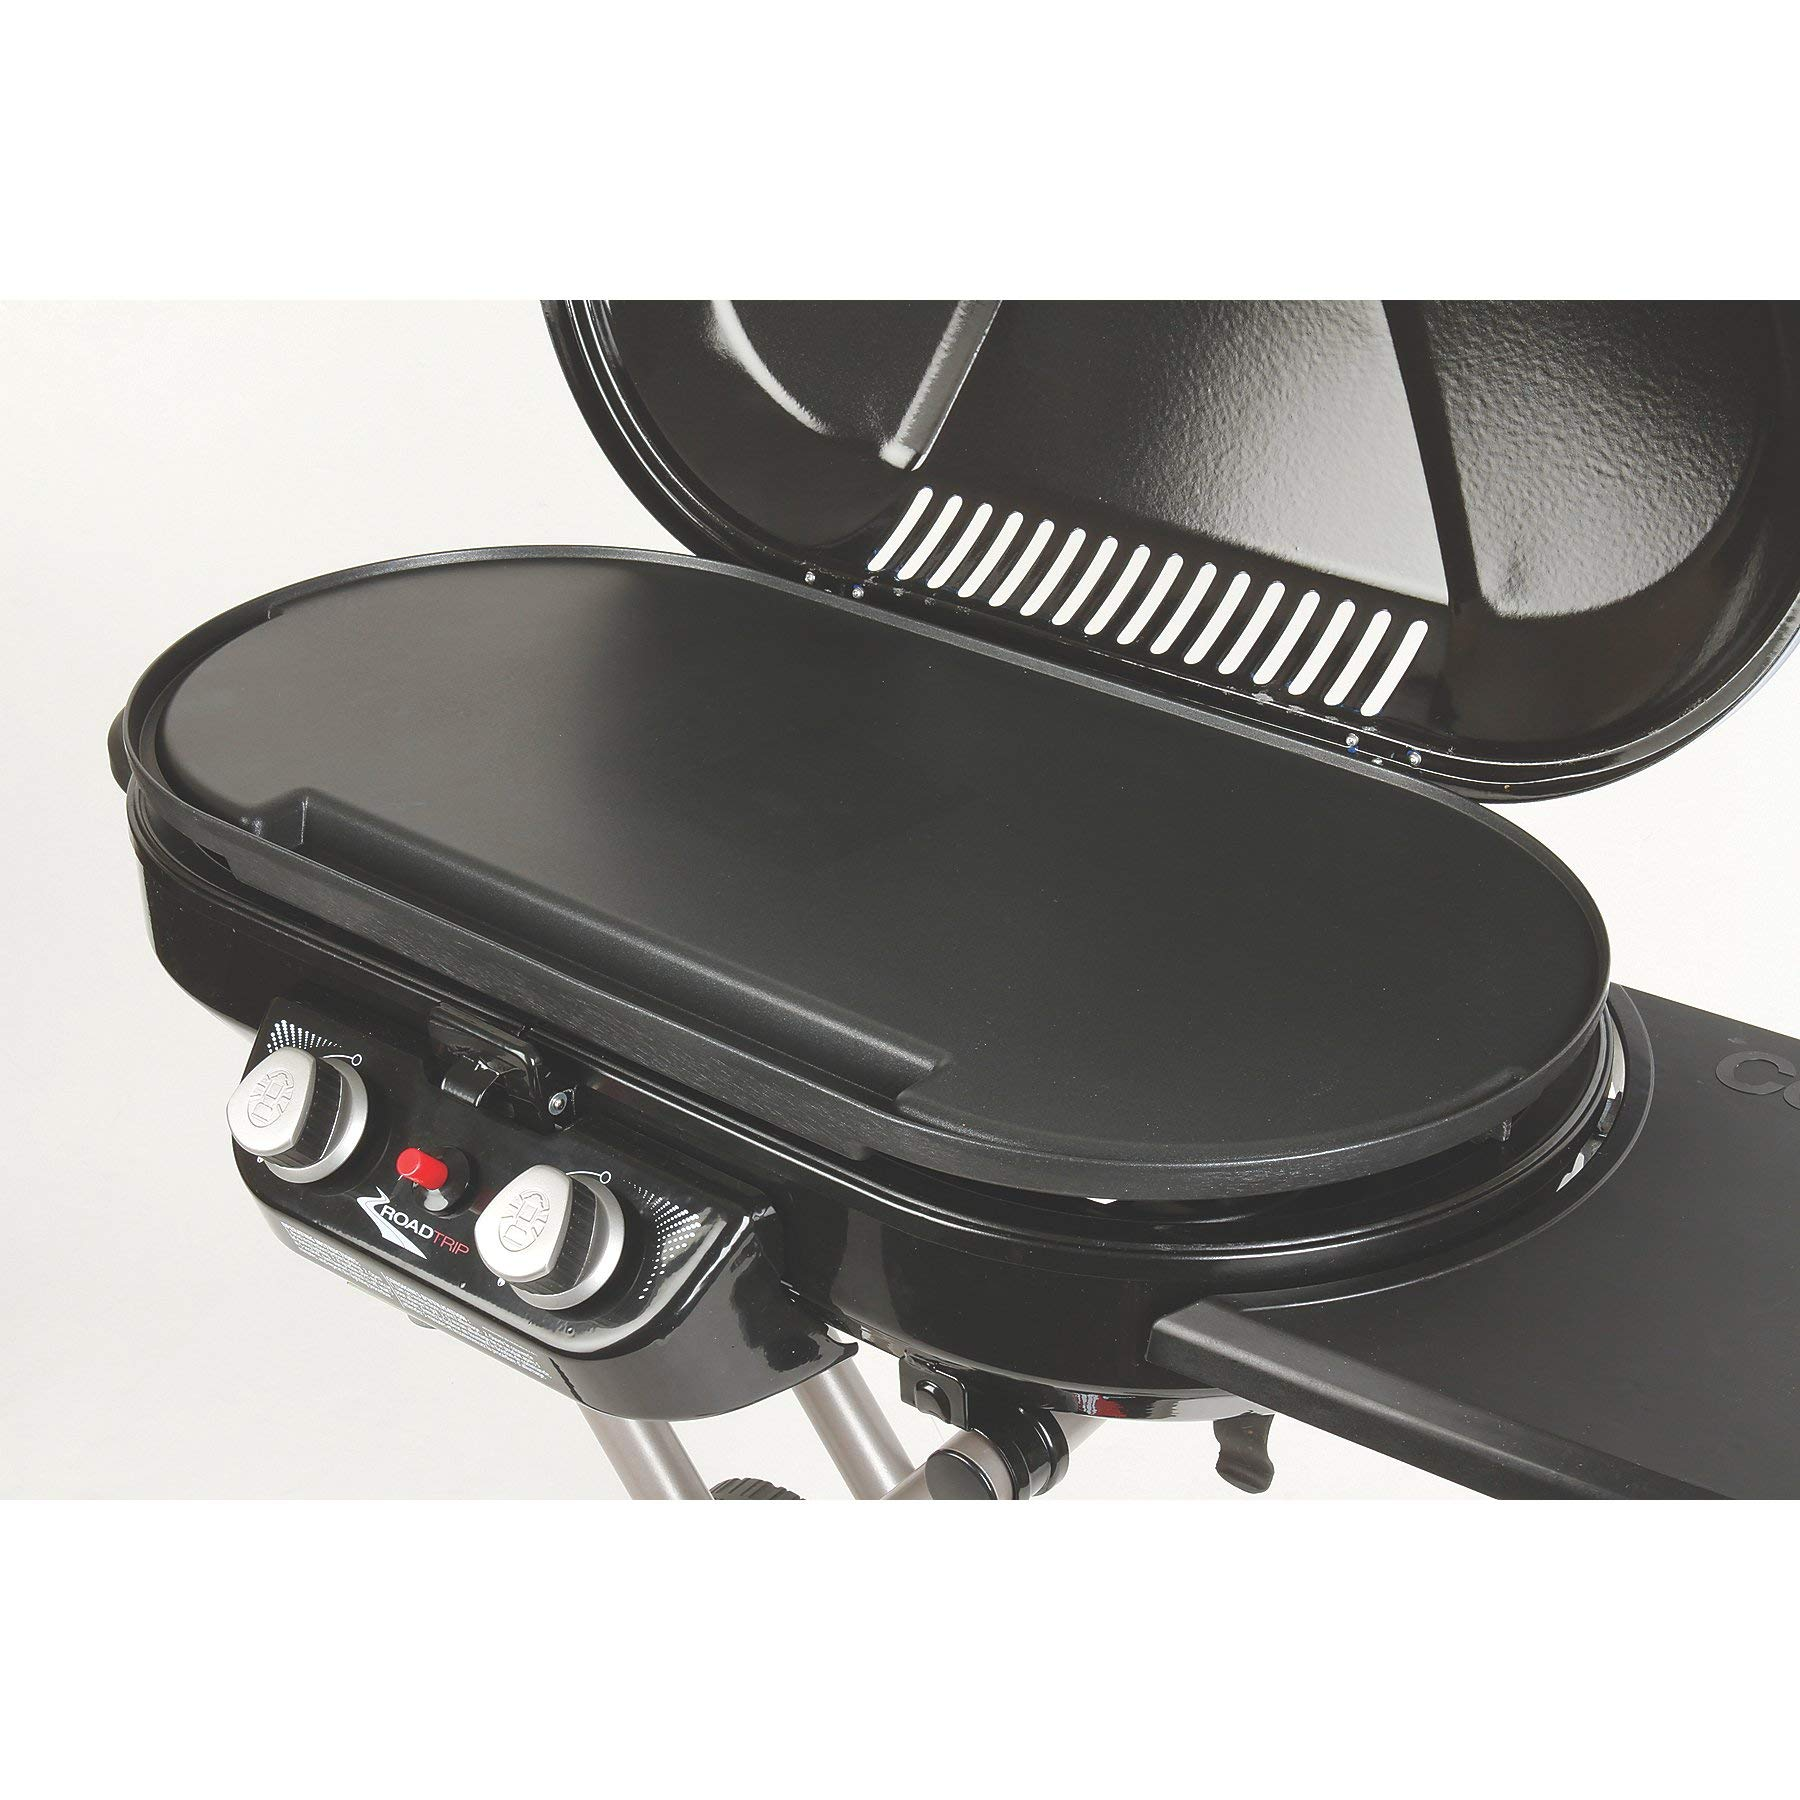 Coleman Roadtrip Swaptop Aluminum Grill Griddle, Full Size (Renewed) by Coleman